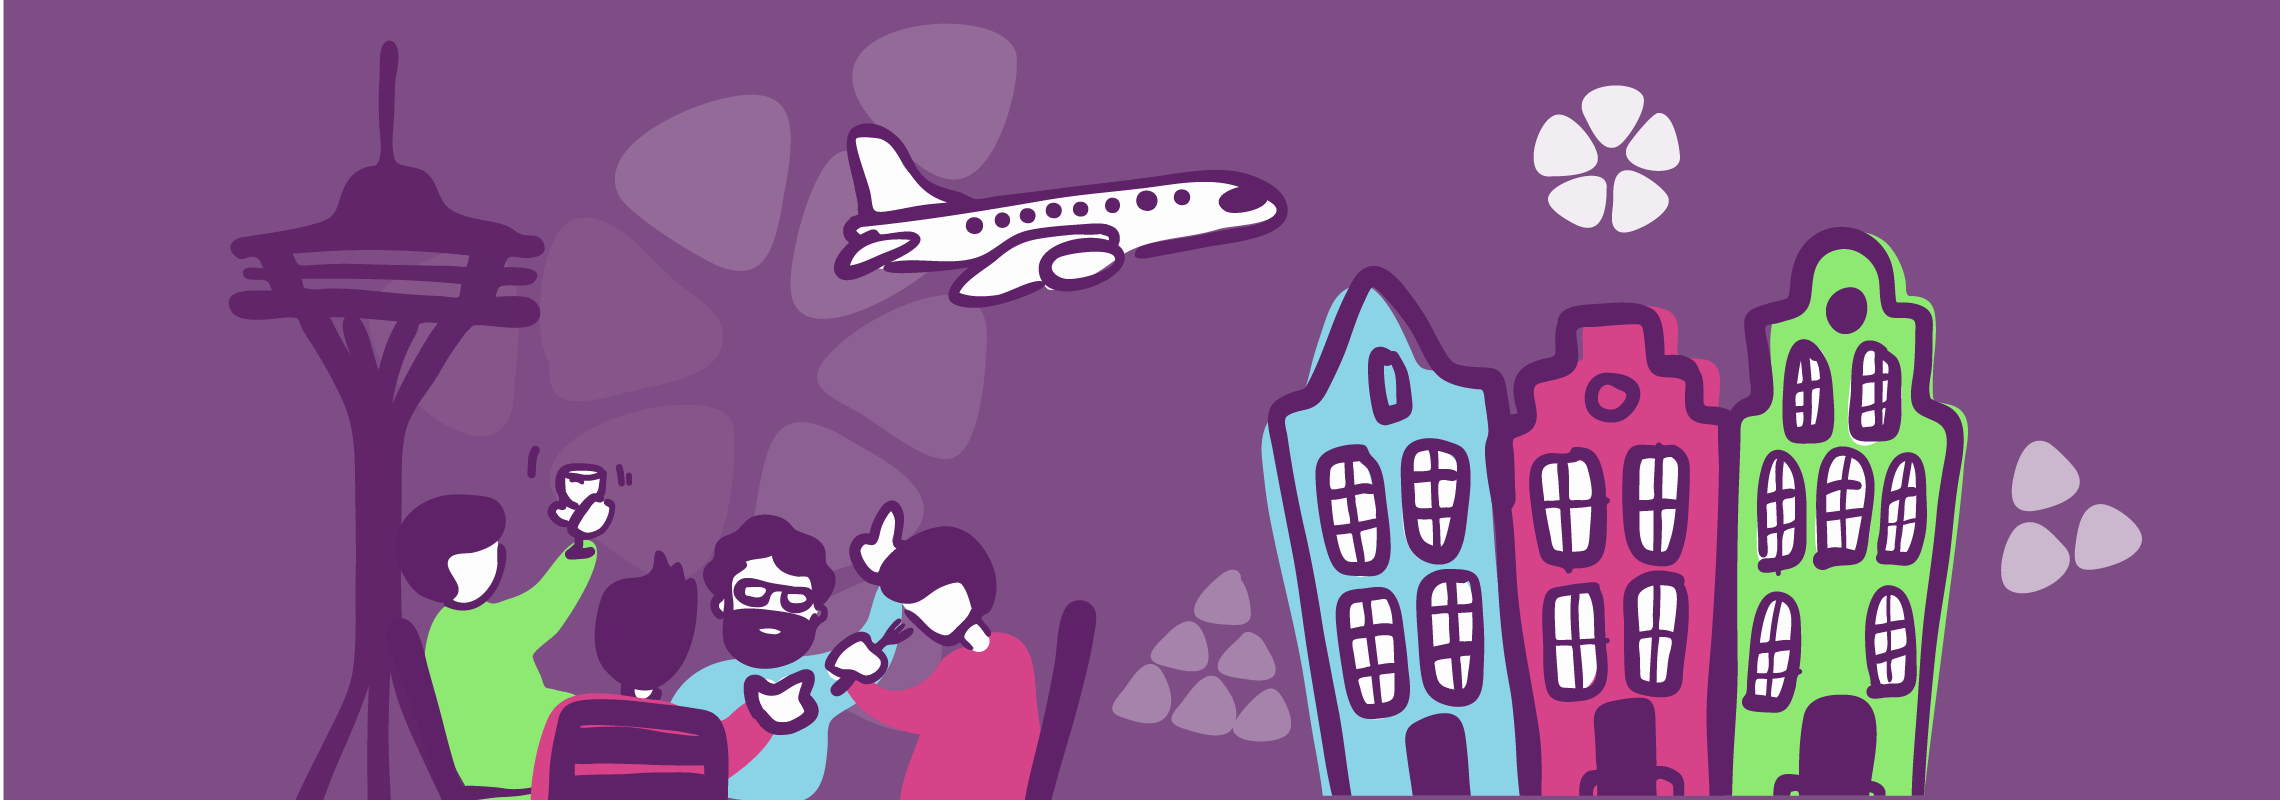 Illustration of airplane over city